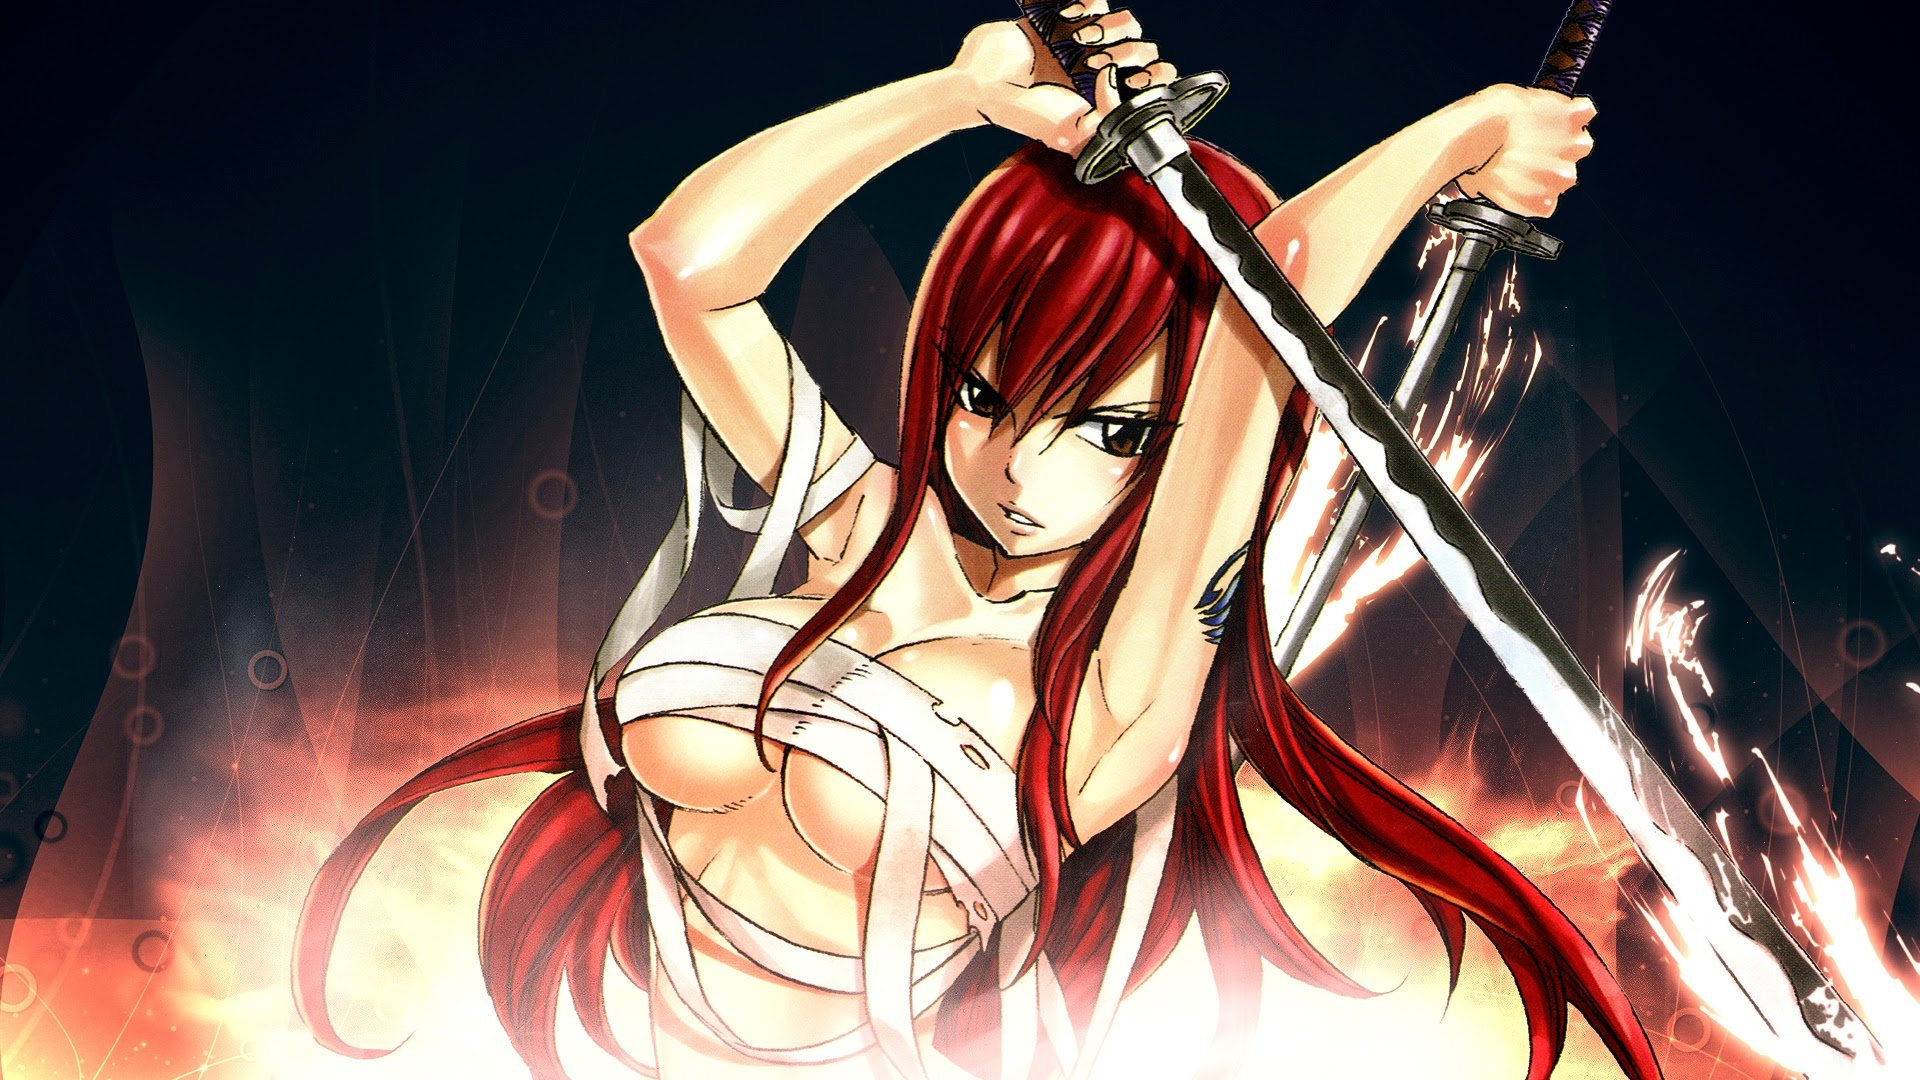 erza scarlet fairy tail anime girl hd wallpaper 1920x1080 7b 1920x1080